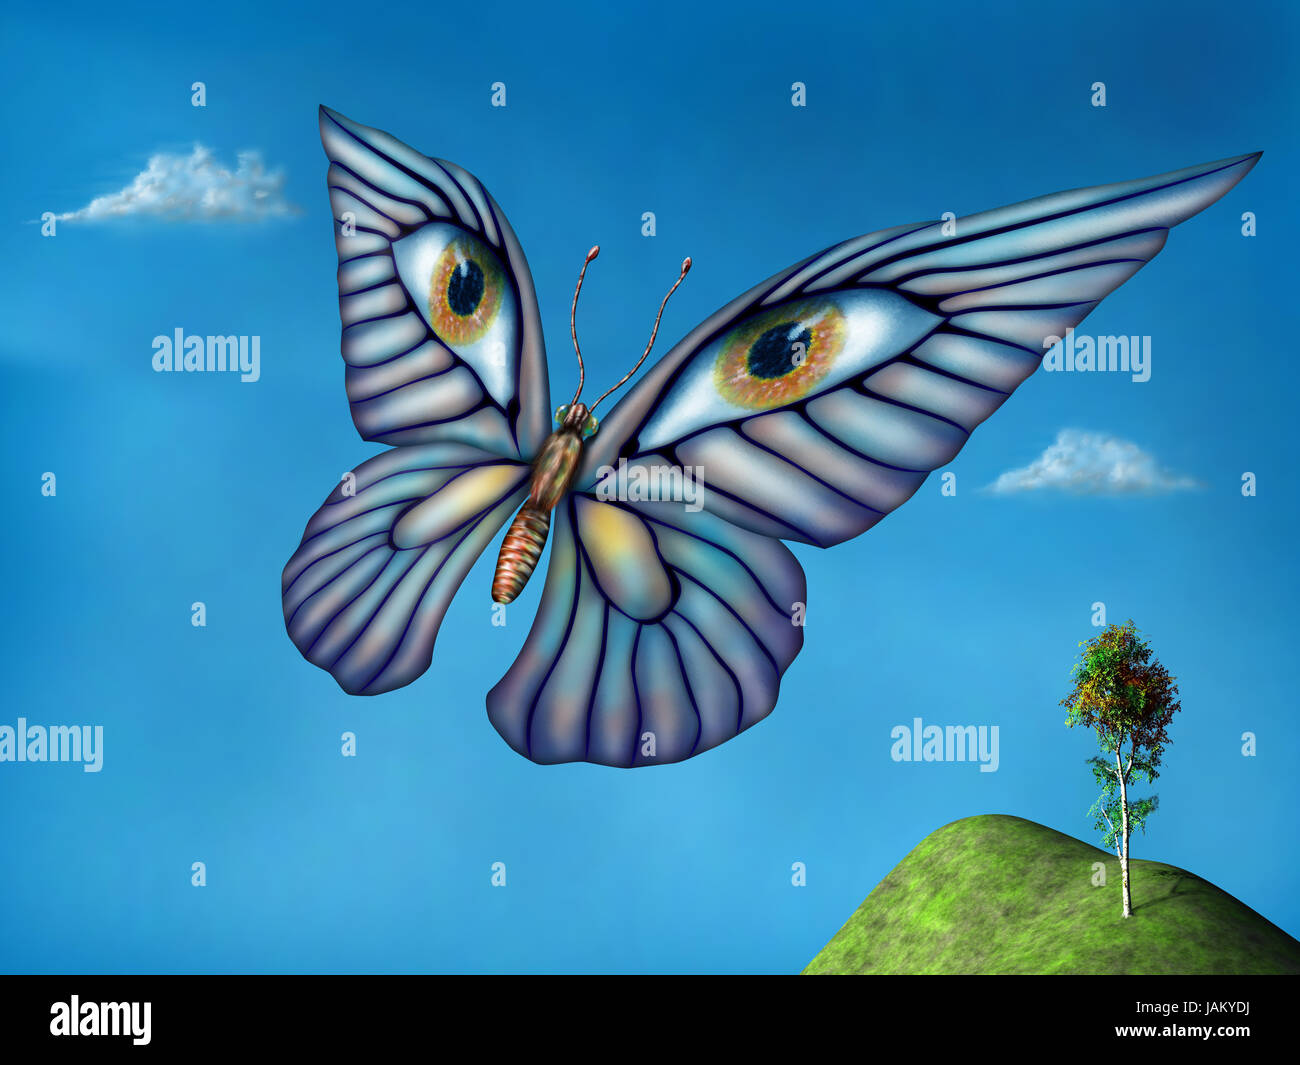 Stylized surreal butterfly flying above green hills on a